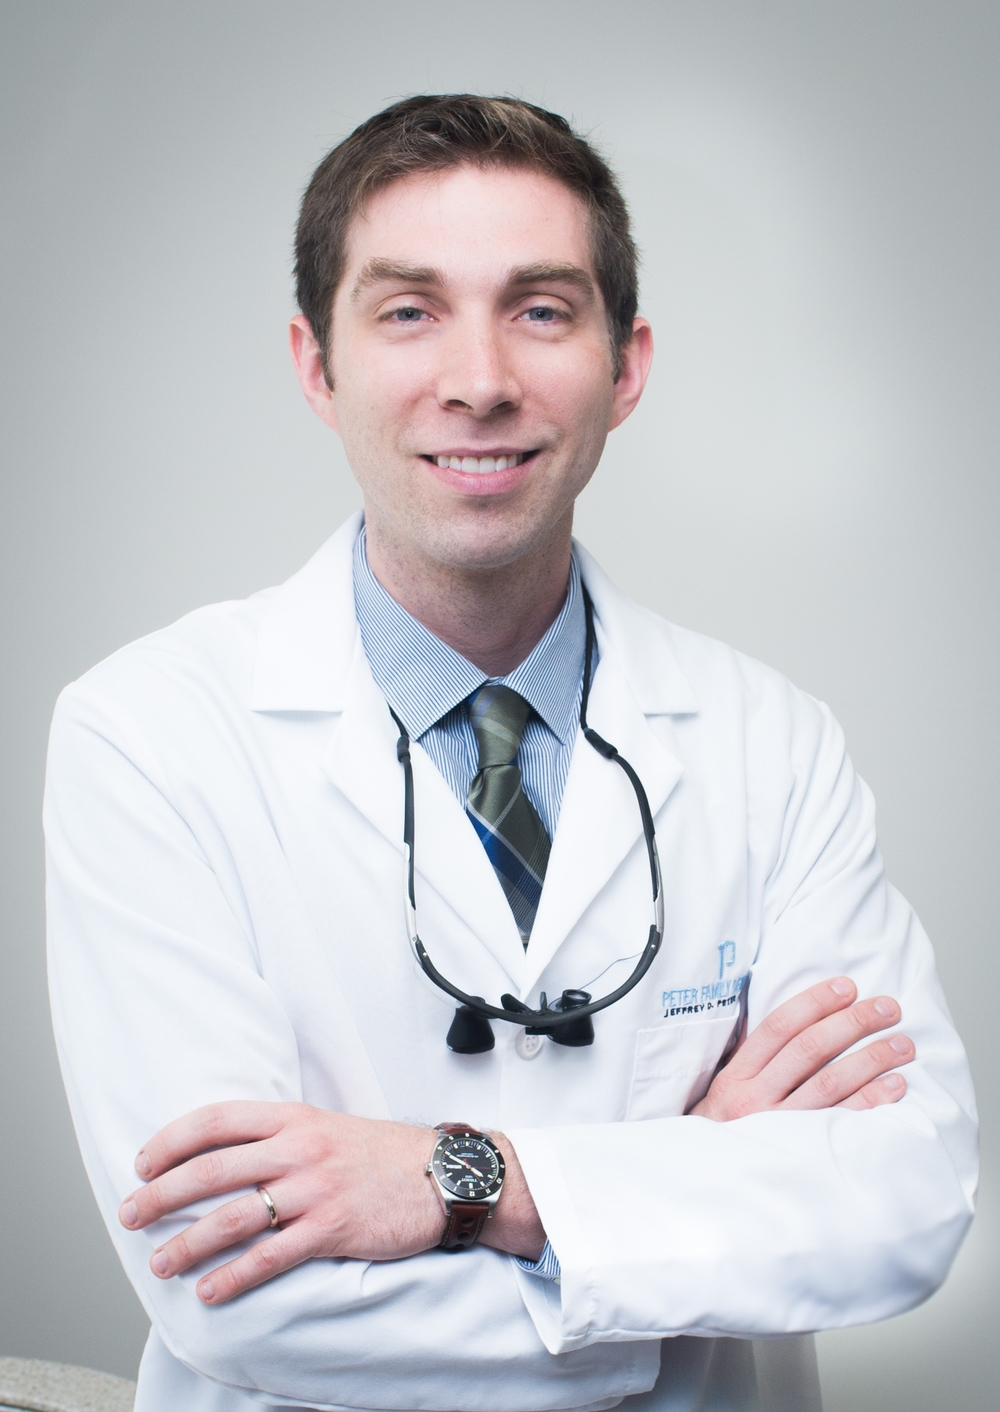 Dr. Peter of Peter Family Dentistry | Family & Pediatric Dentist in Independence, Kentucky